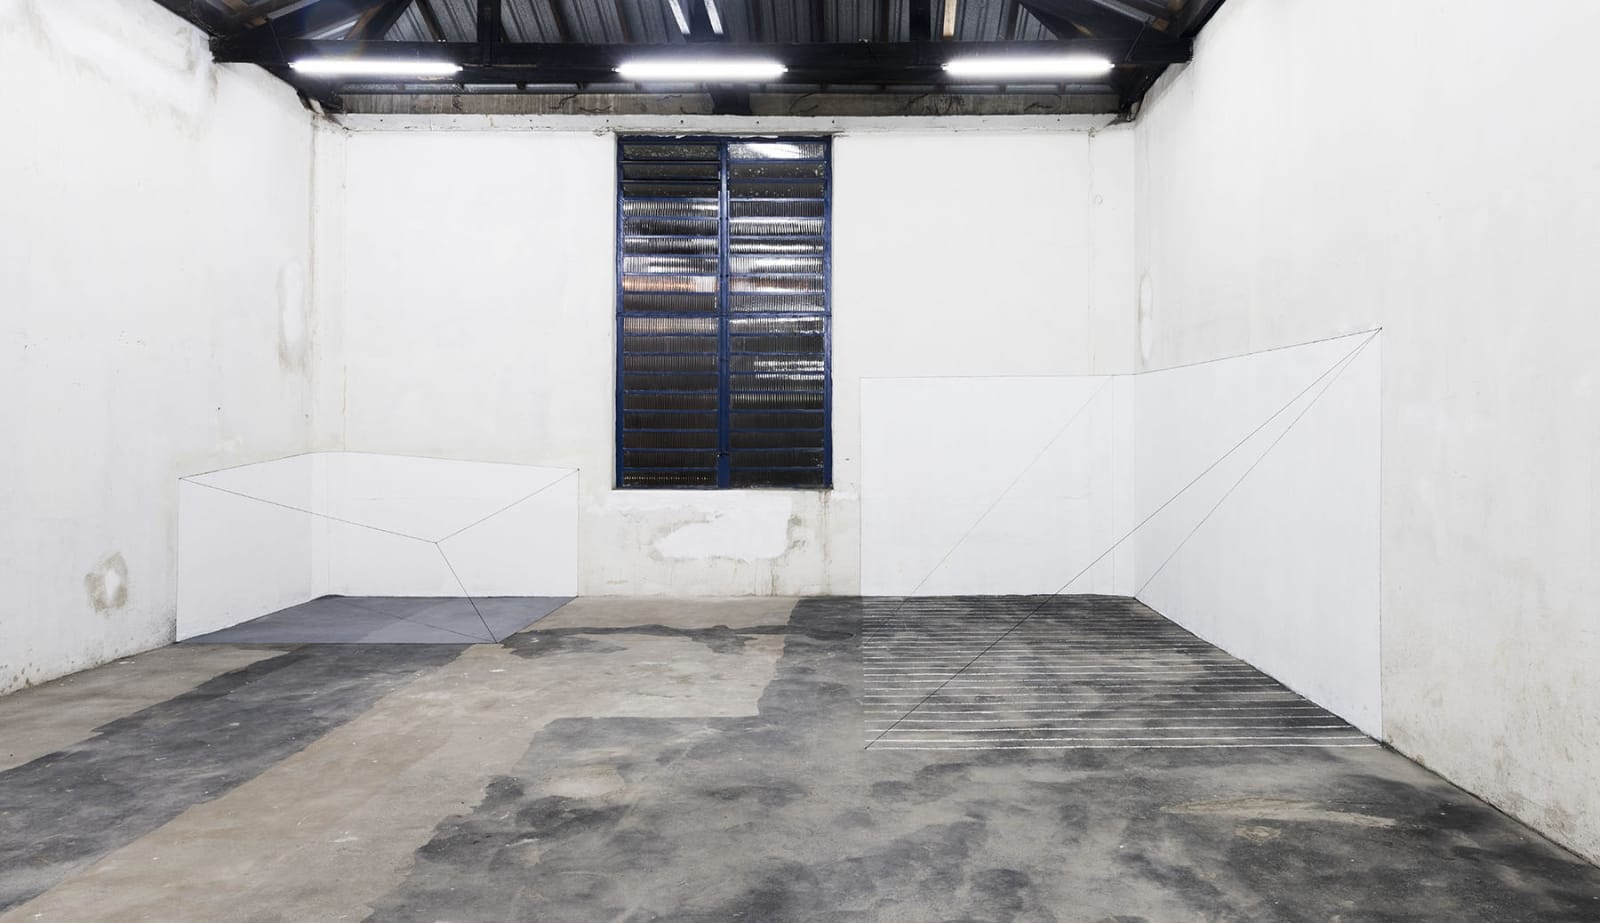 Inside, what exists outside installation view at Galeria Jaqueline Martins, São Paulo, 2017